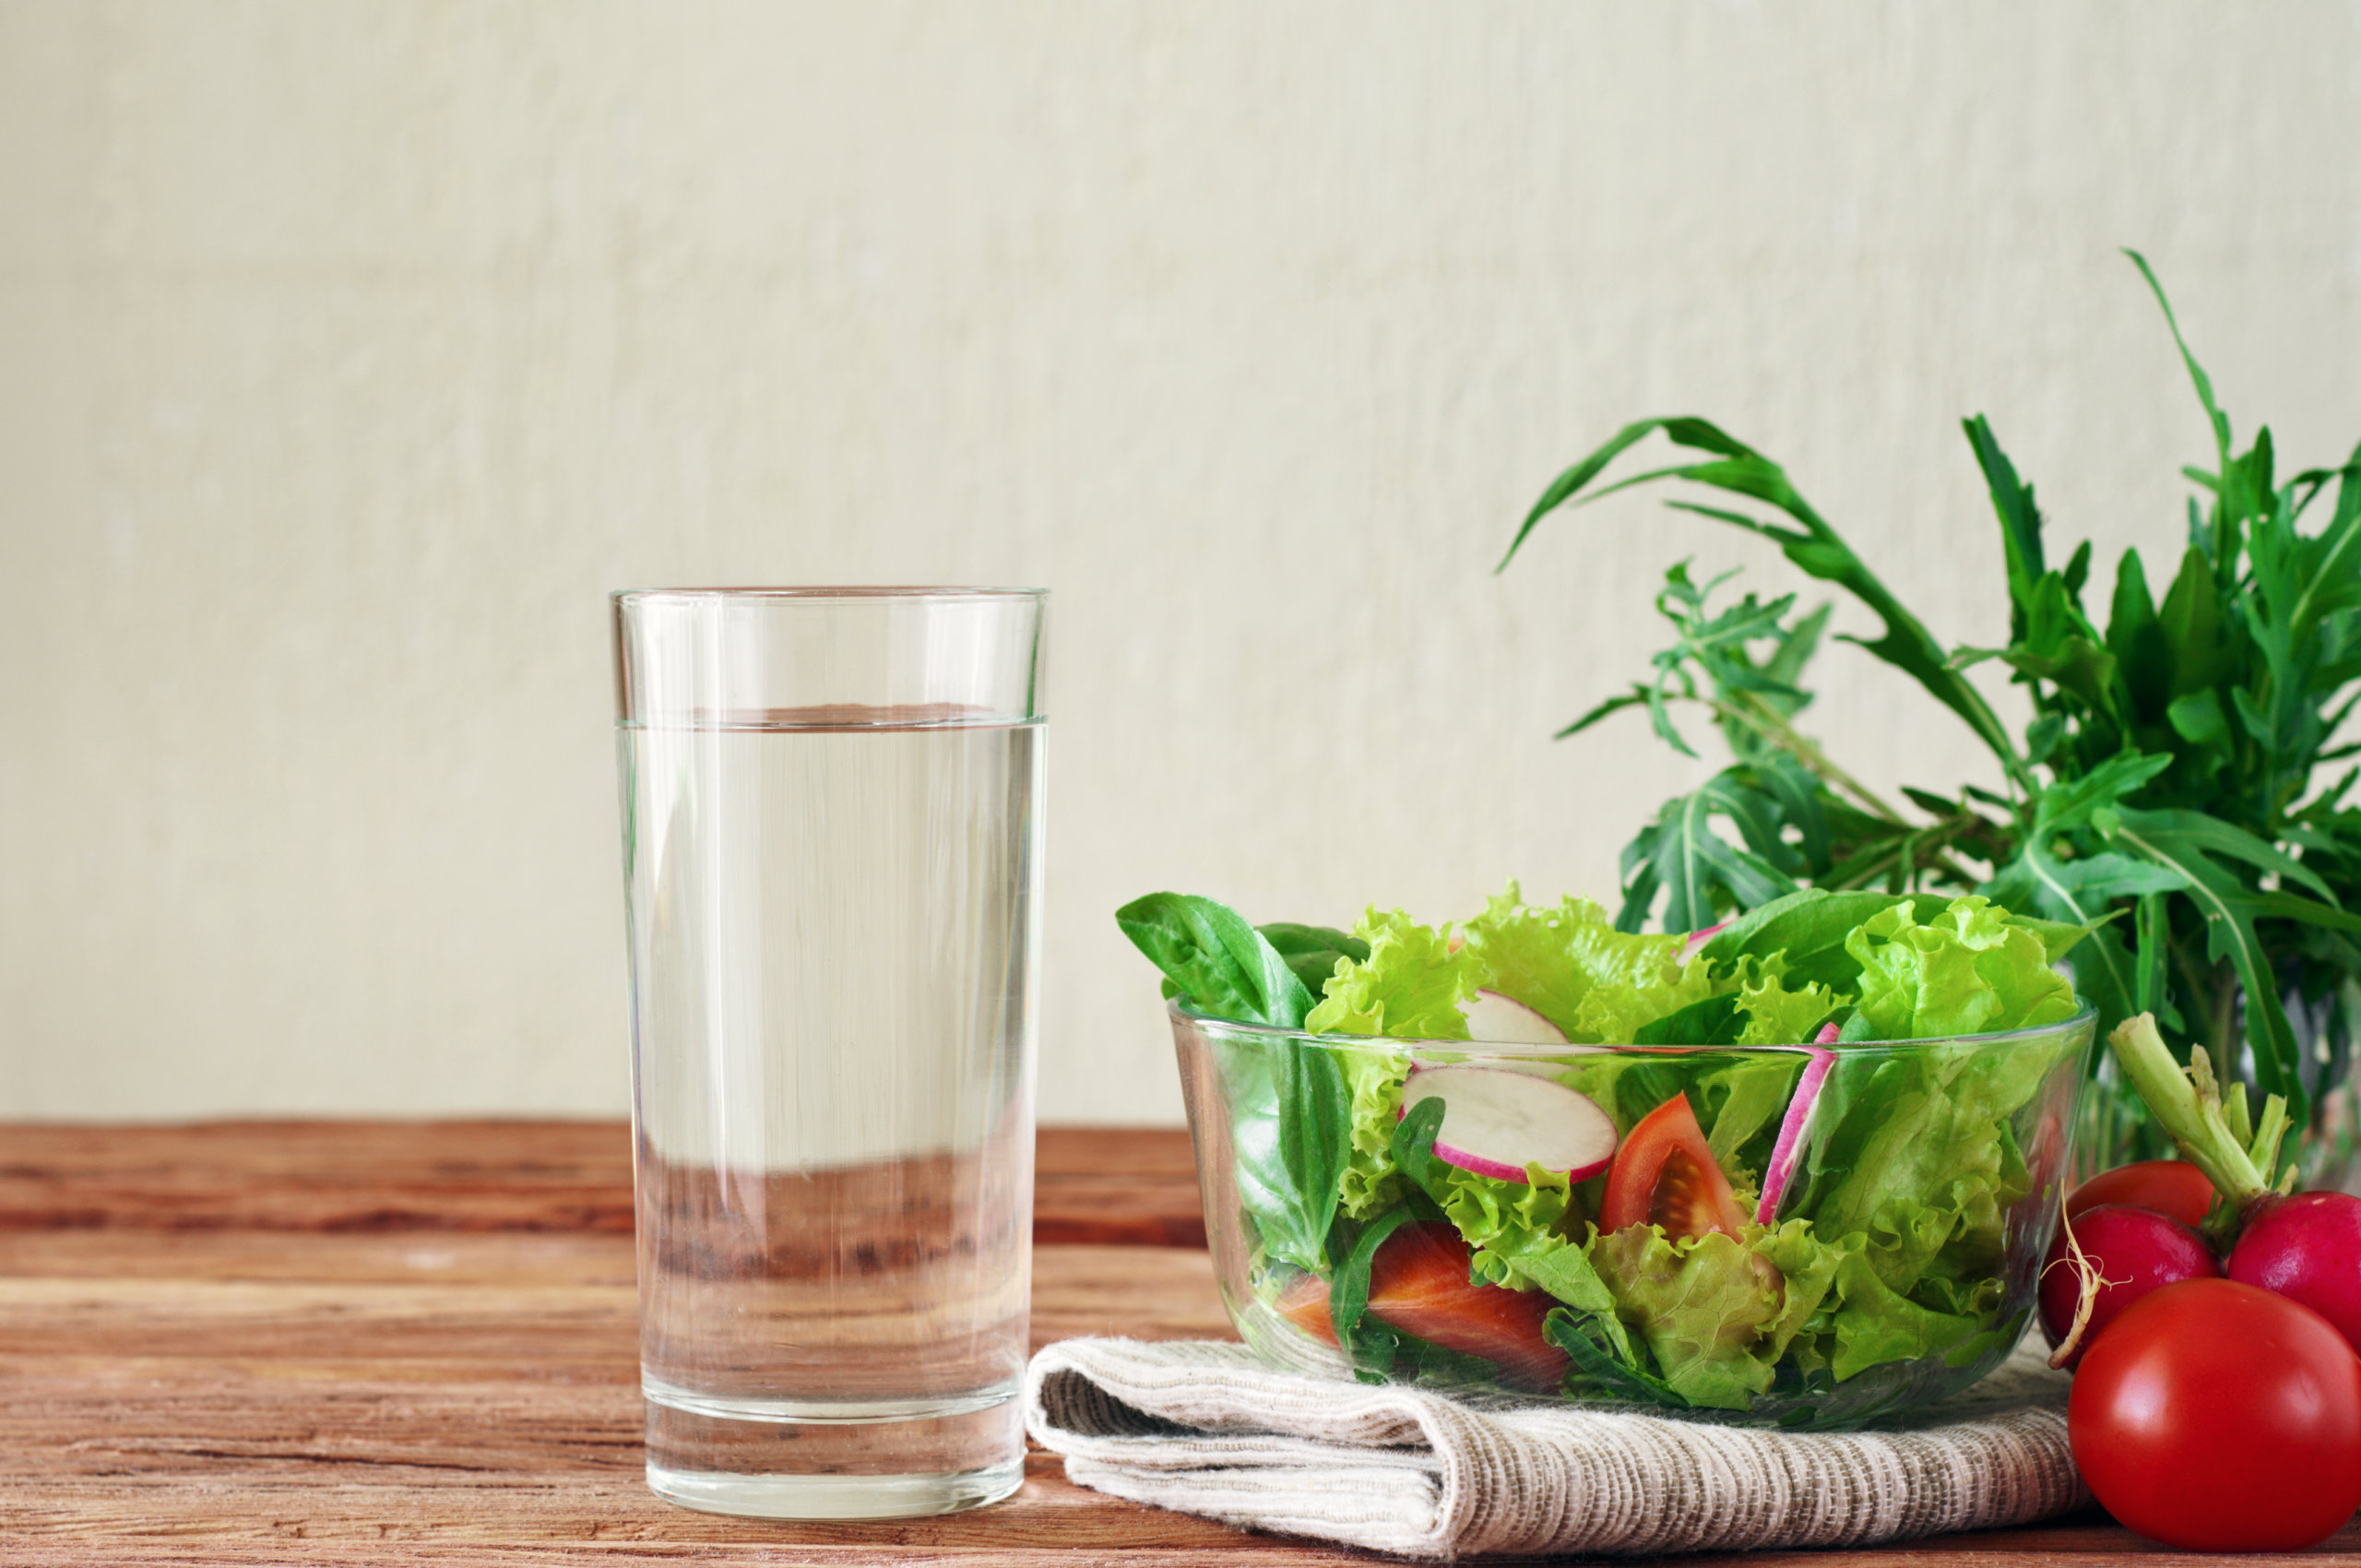 glass of water on table next to salad